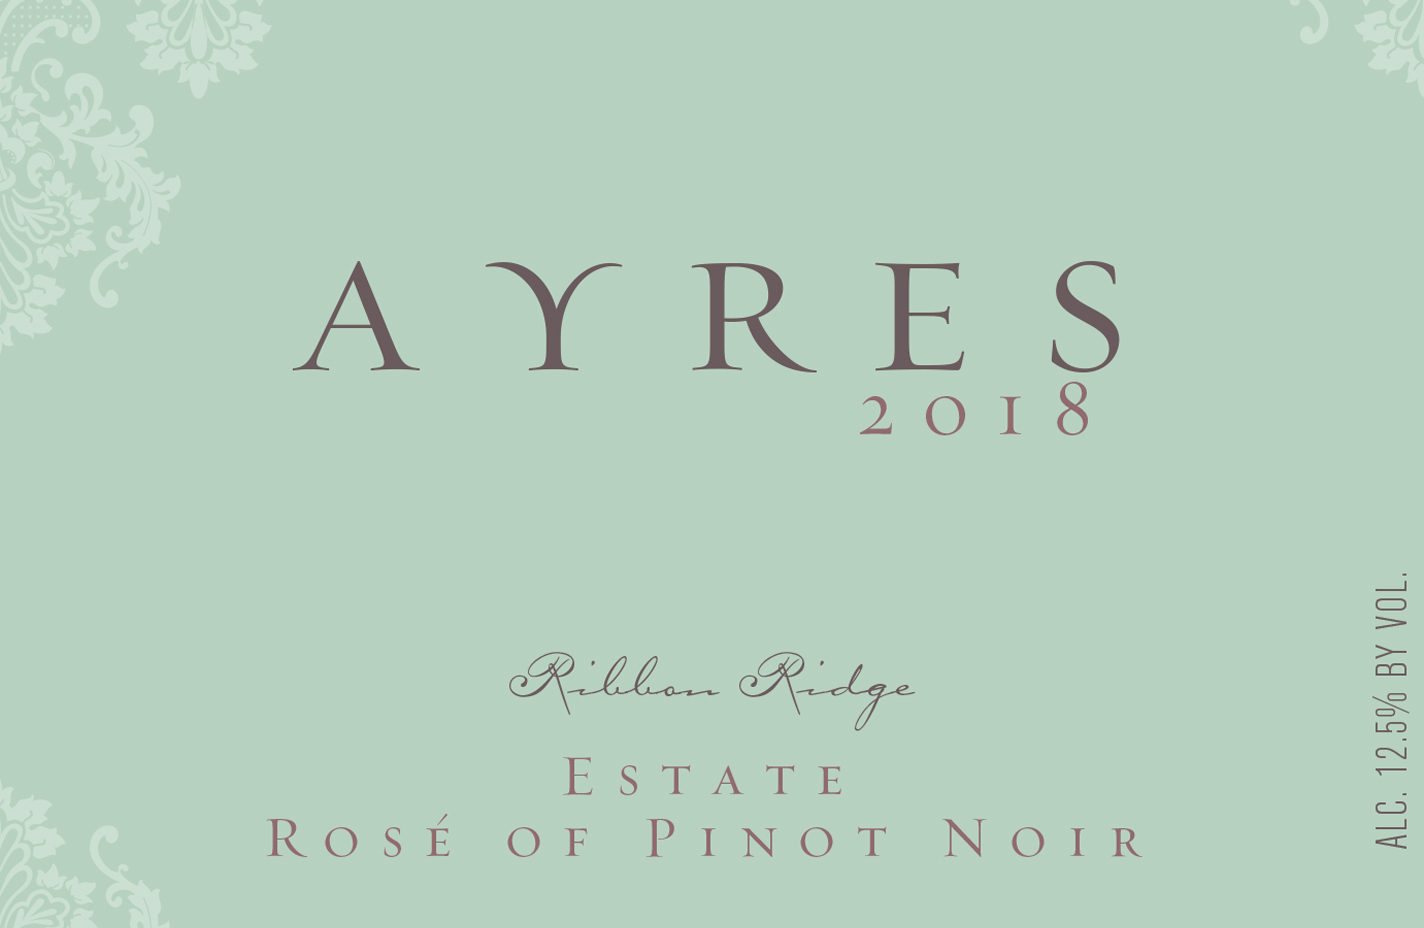 Ayres-Vineyard-Rose-Pinot-Noir-2018-Label.jpg